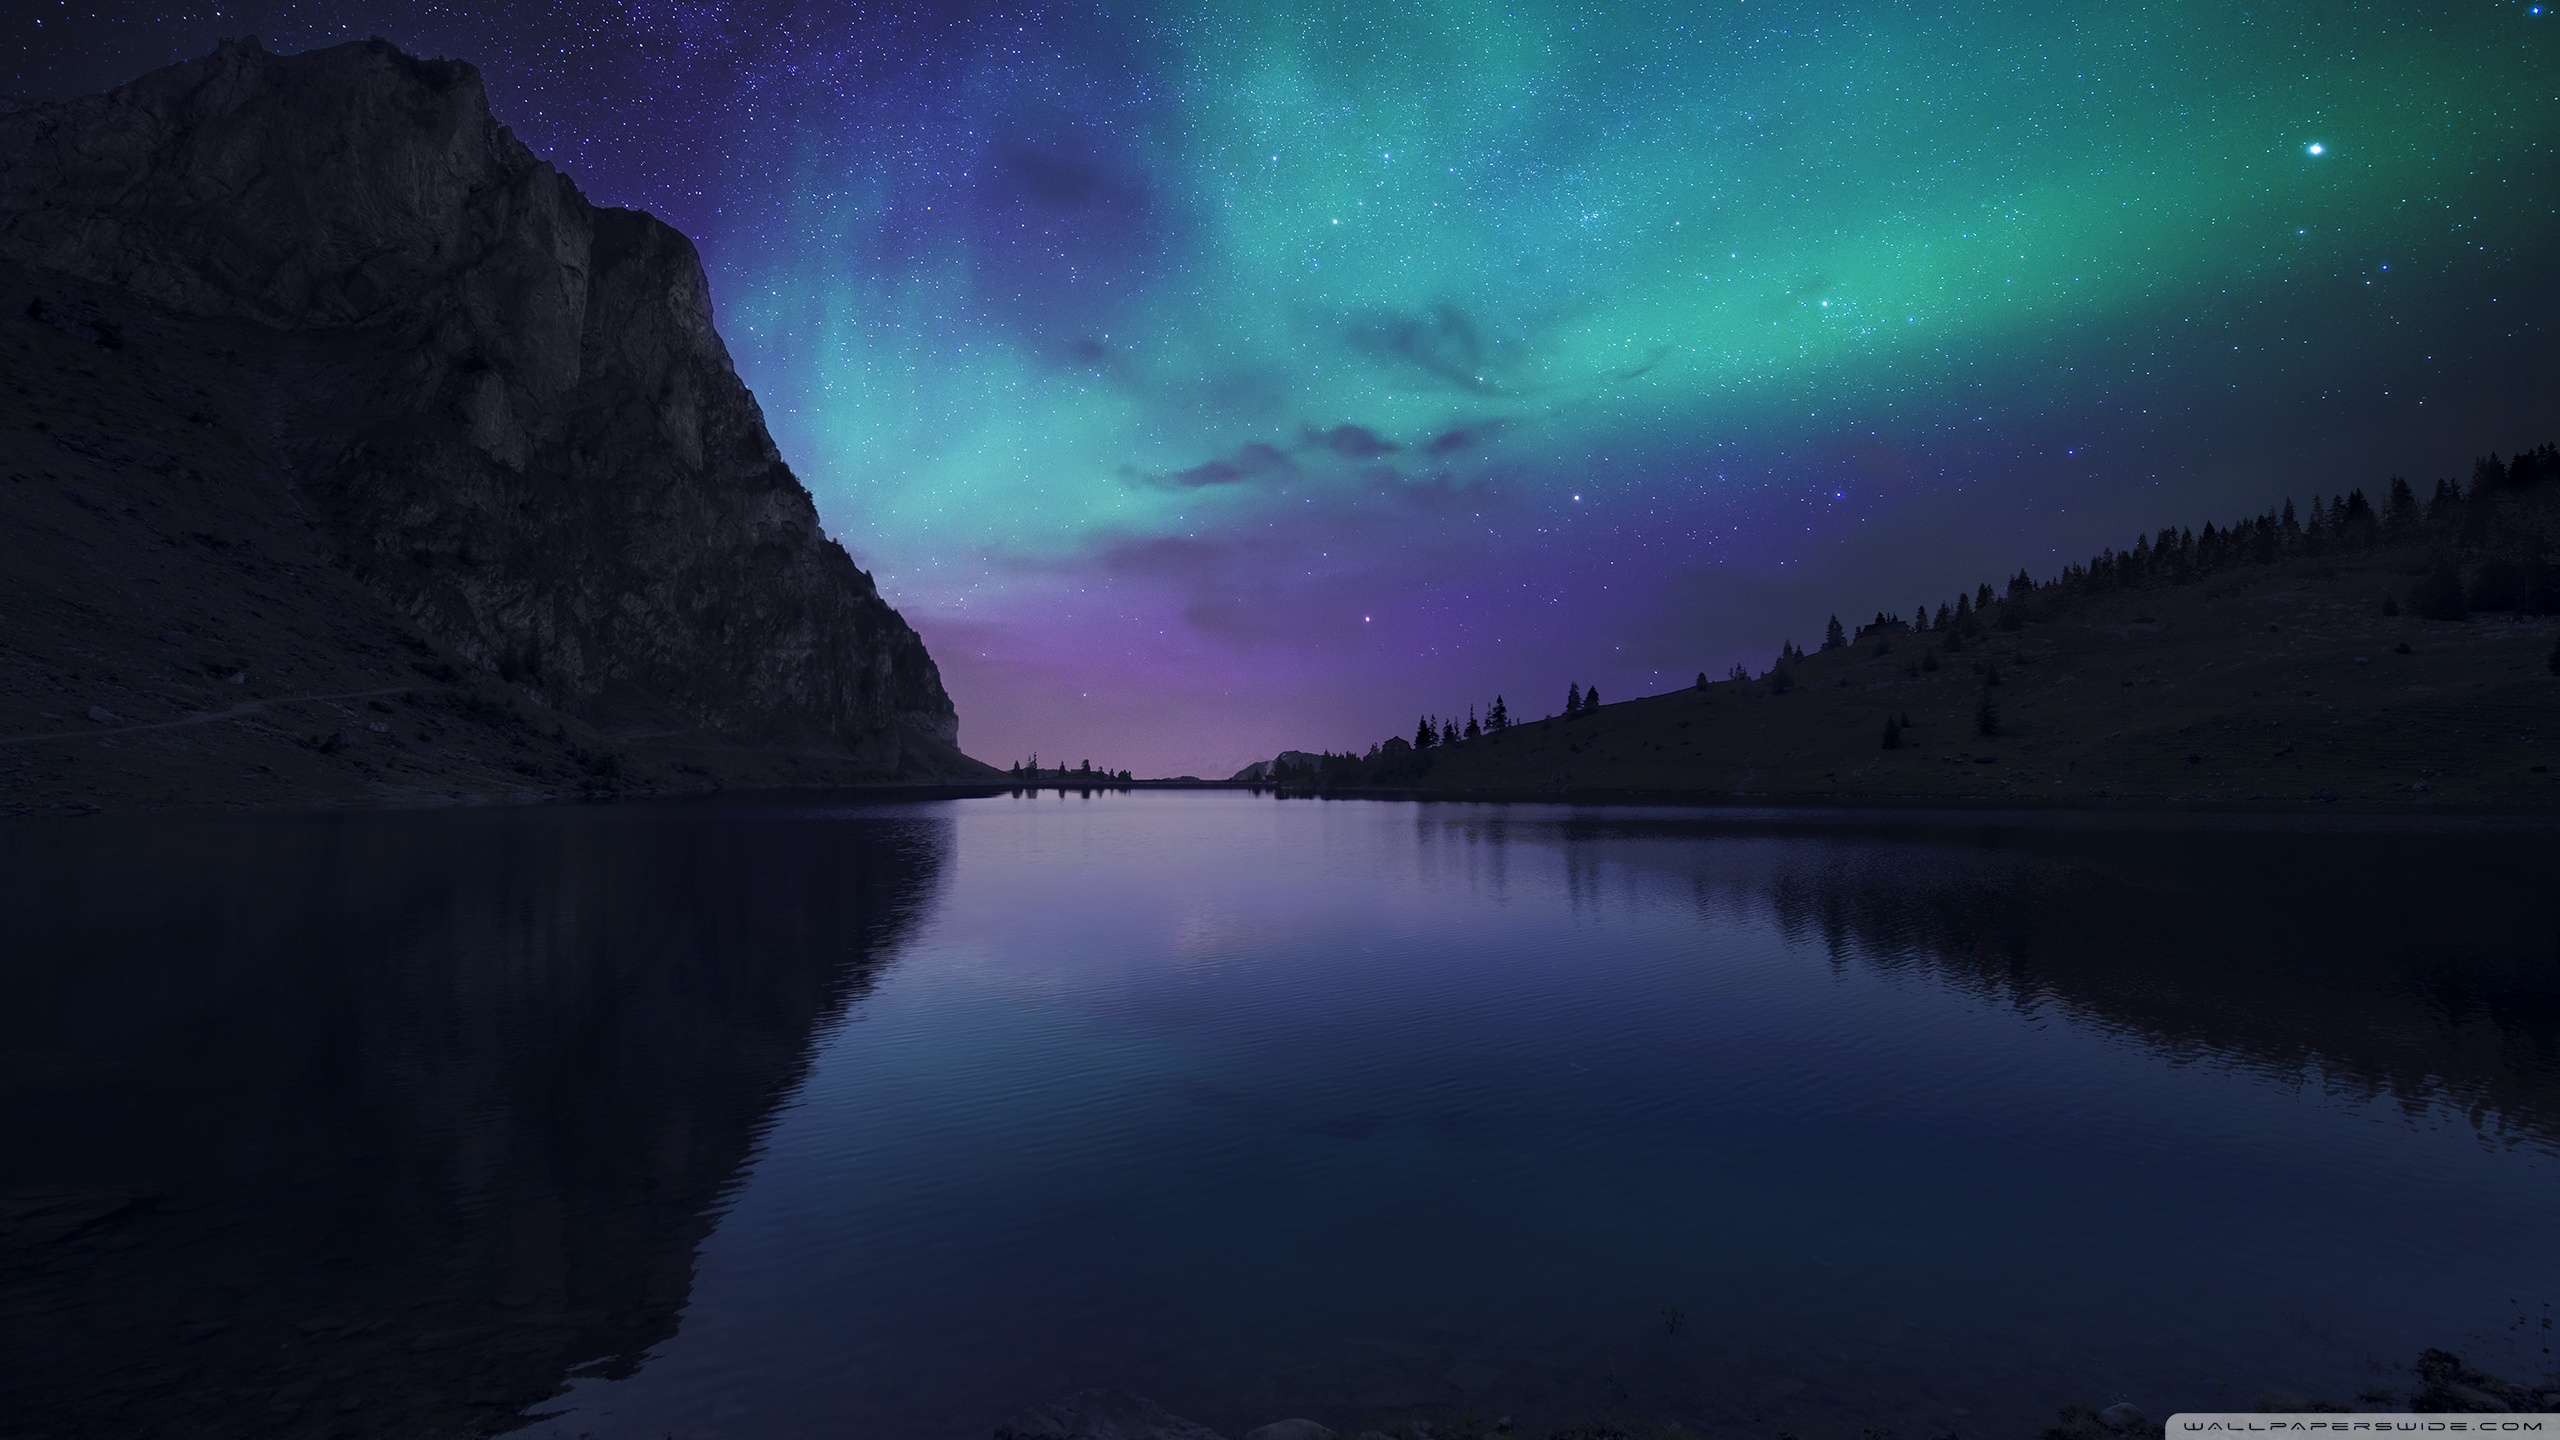 aurora_borealis_atmosphere-wallpaper-2560x1440